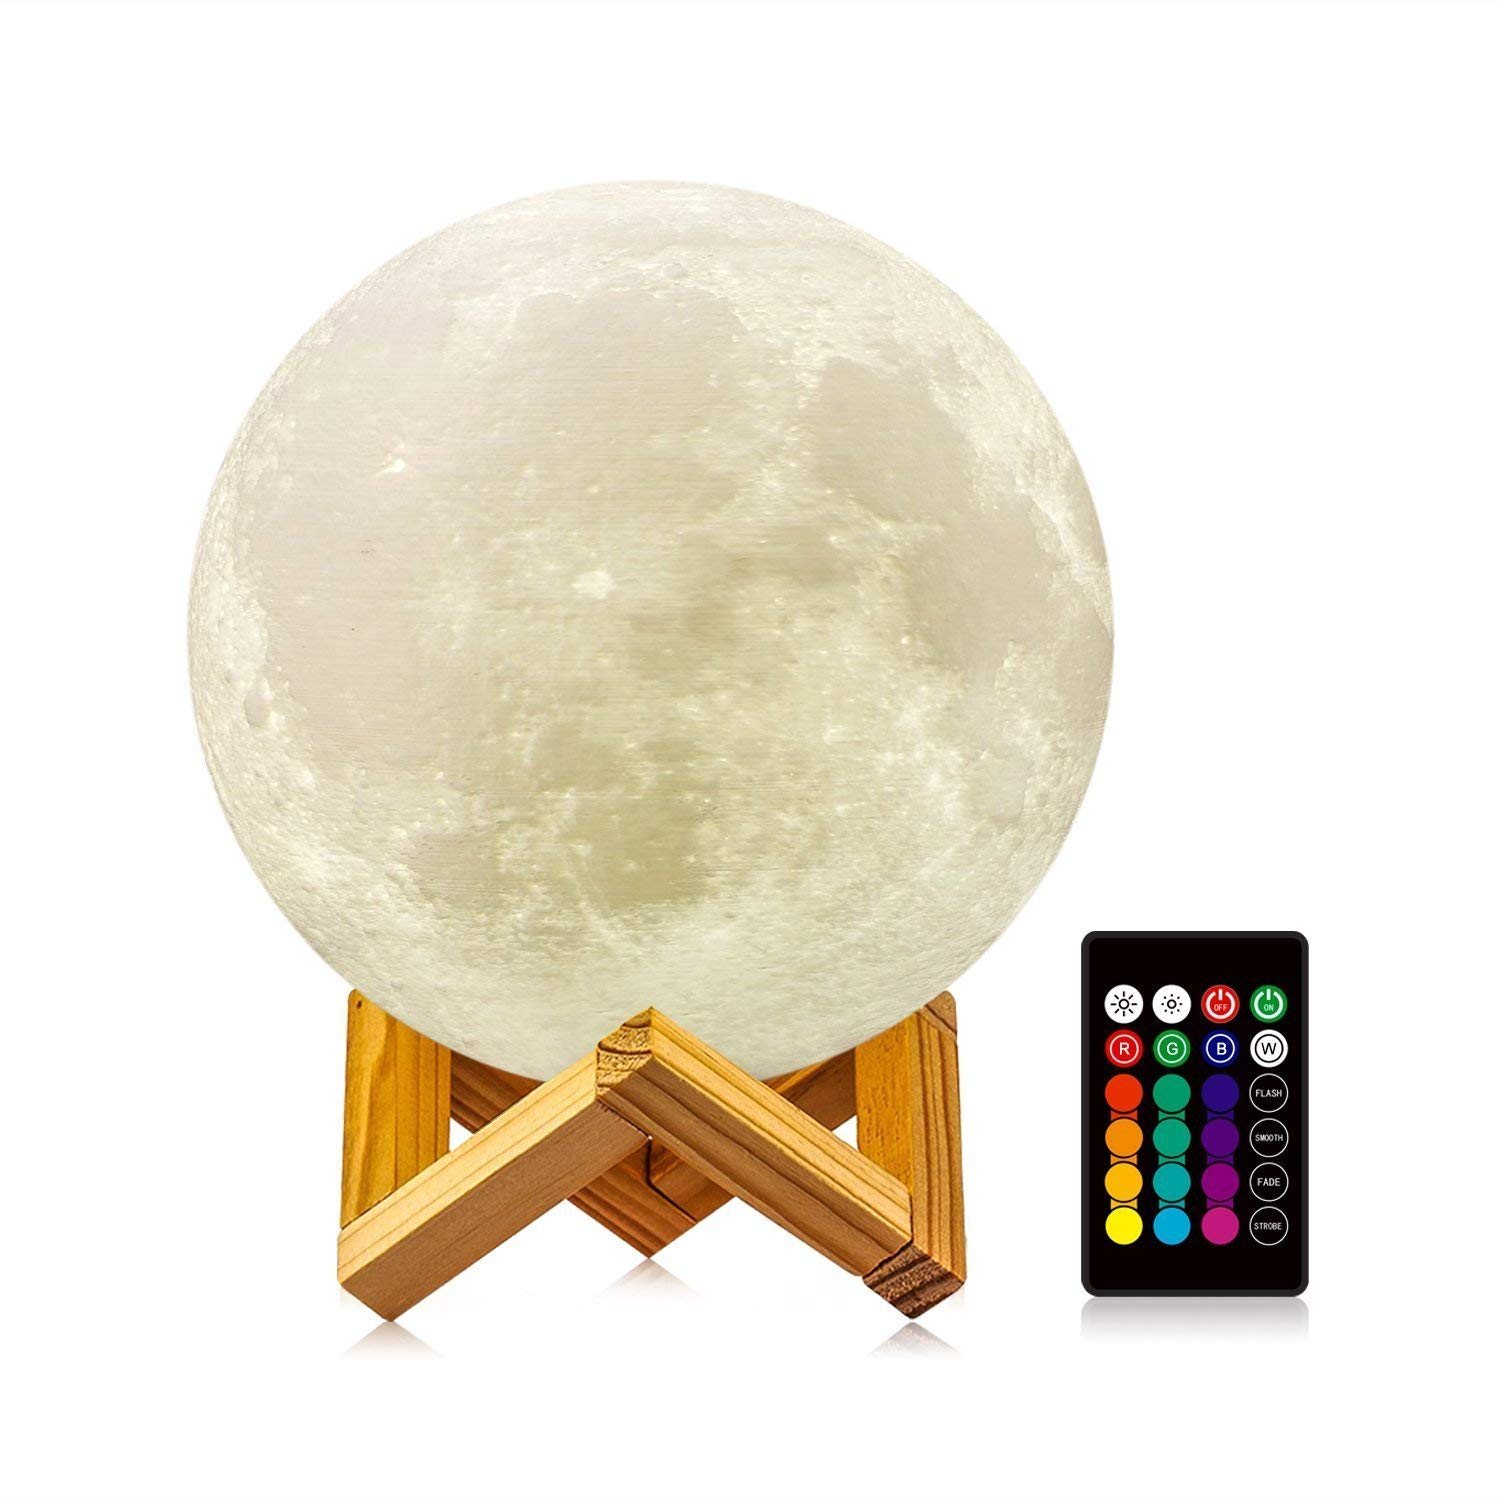 ASSBABY Moon Lamp with Stand(Diameter 5.9 INCH), 16 Colors 3D Print Moon Light with Remote & Touch Control and USB Recharge, Home Decorative Night Light for Creative Gift -Best Gifts